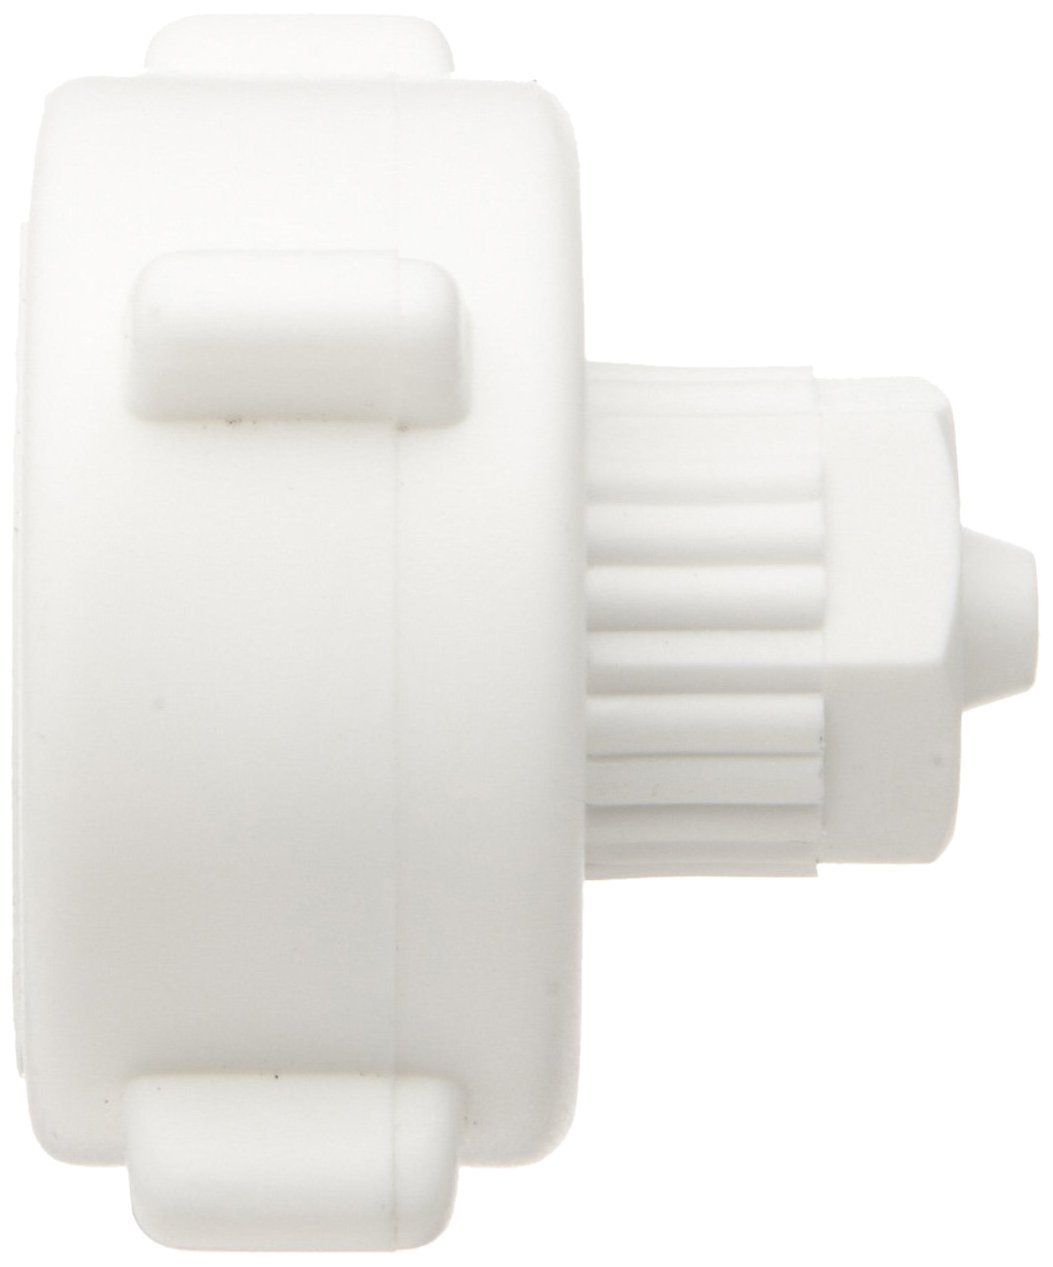 Pack of 5 Adapter Tefen Fiberglass Polypropylene Compression Tube Fitting 6 mm Tube OD x 3//4 BSPT Female White